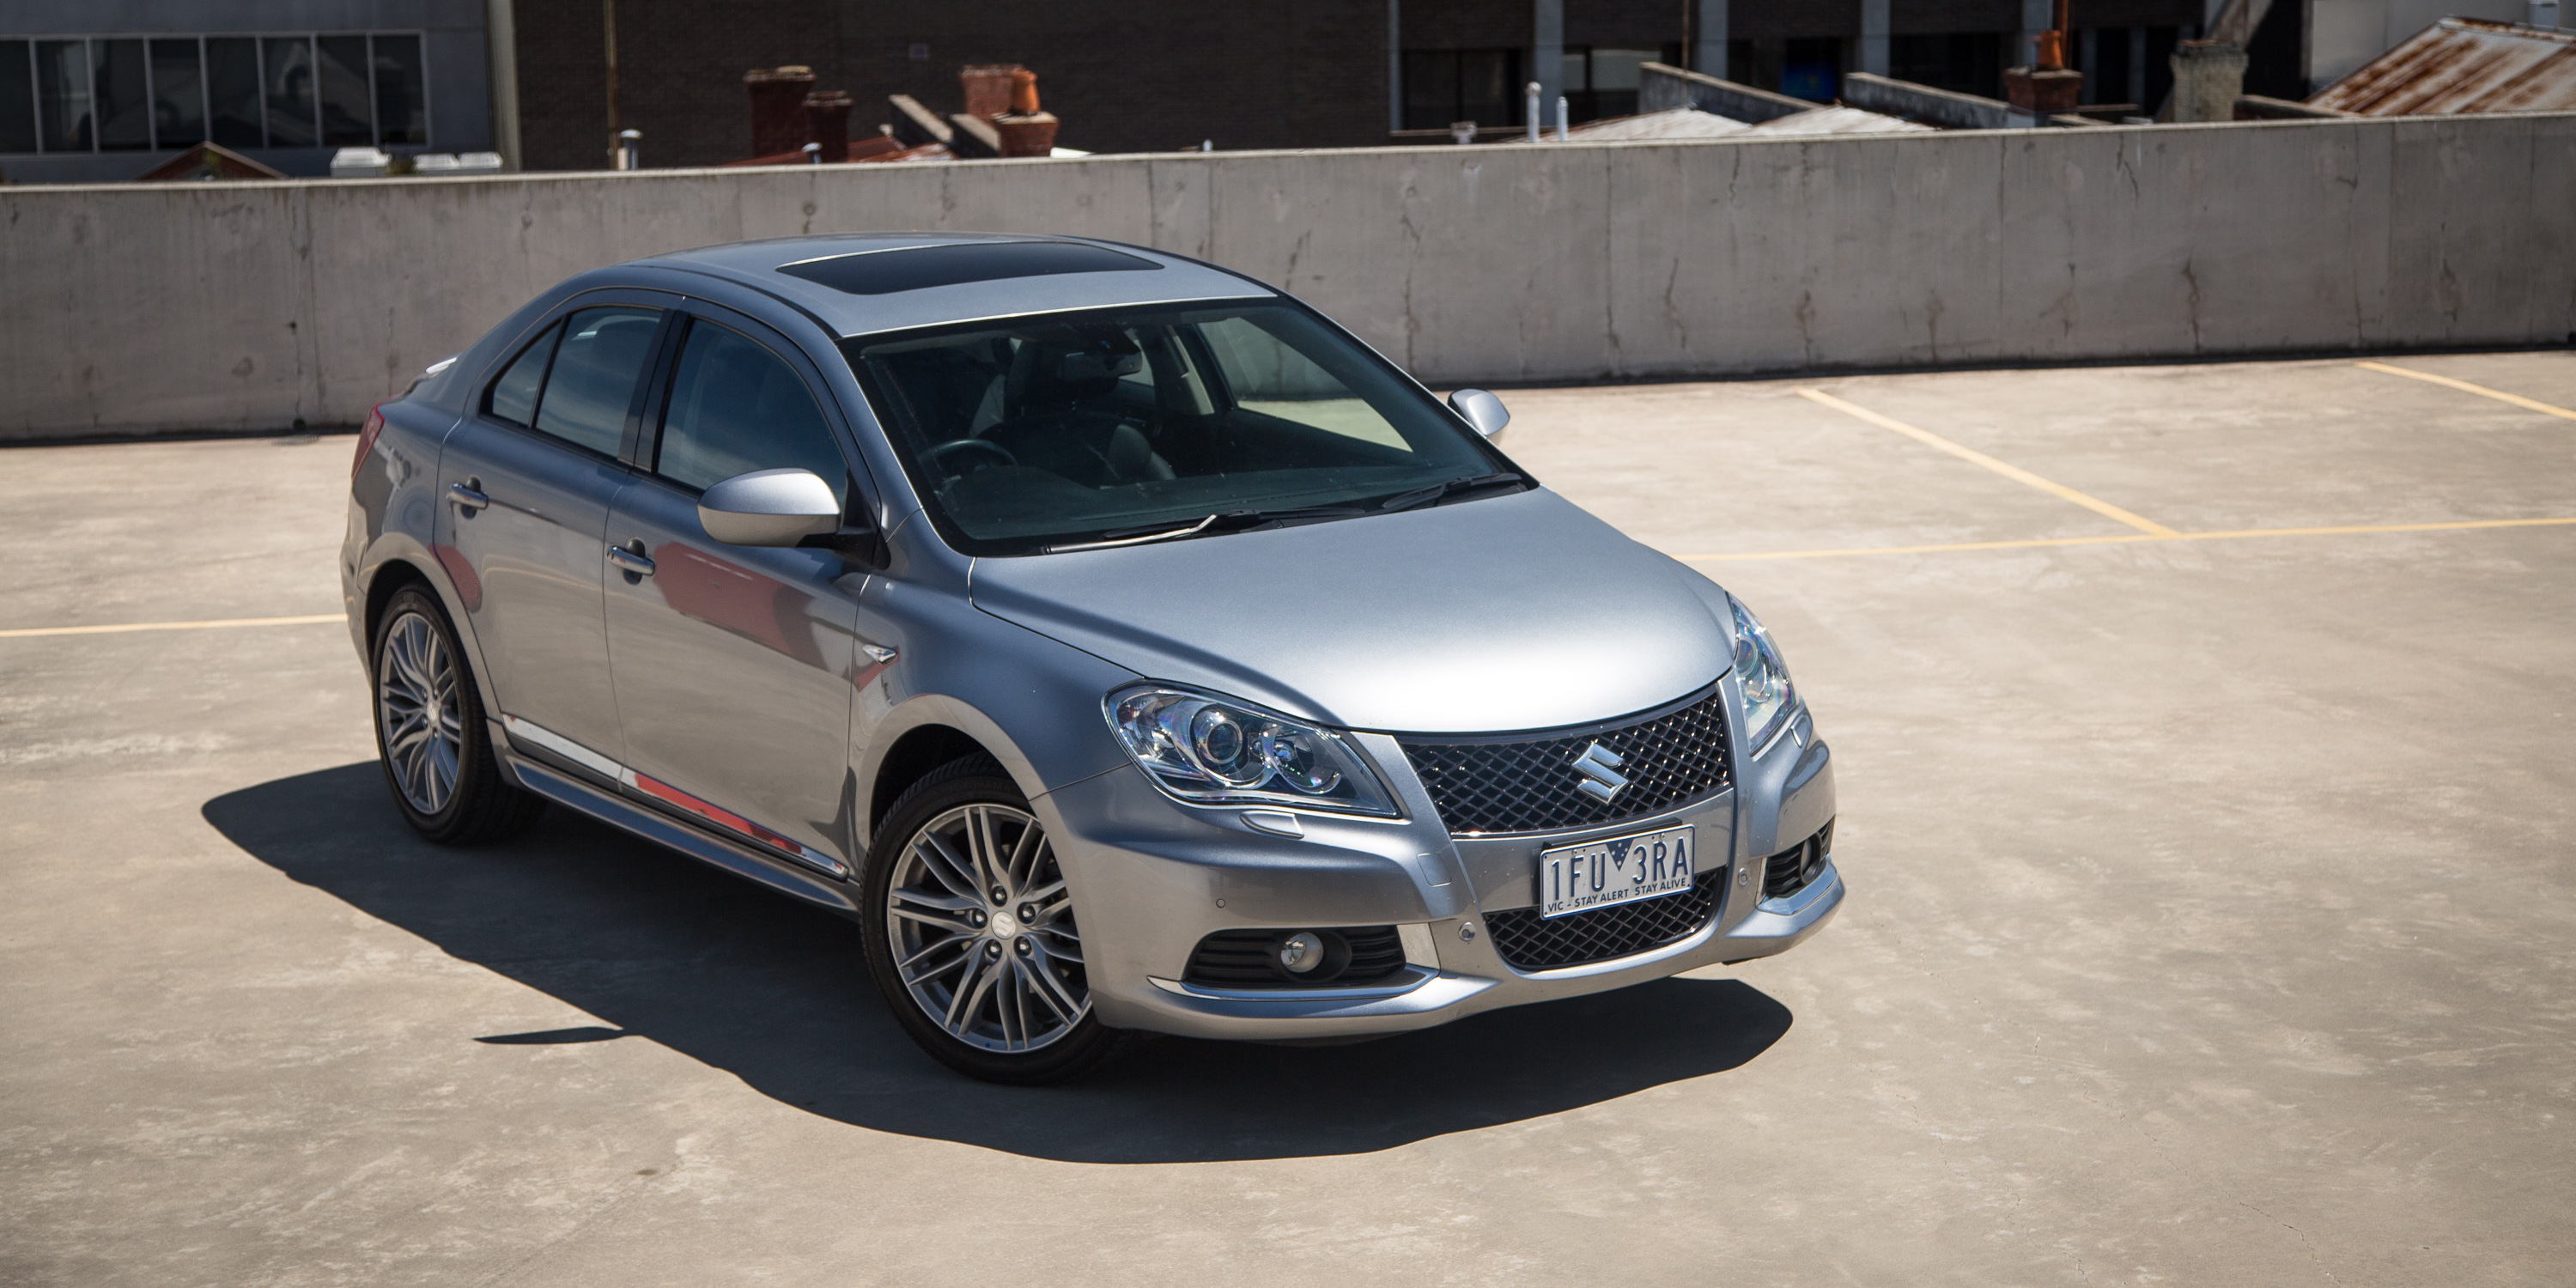 2016 Suzuki Kizashi Sport Premium Review Photos Caradvice